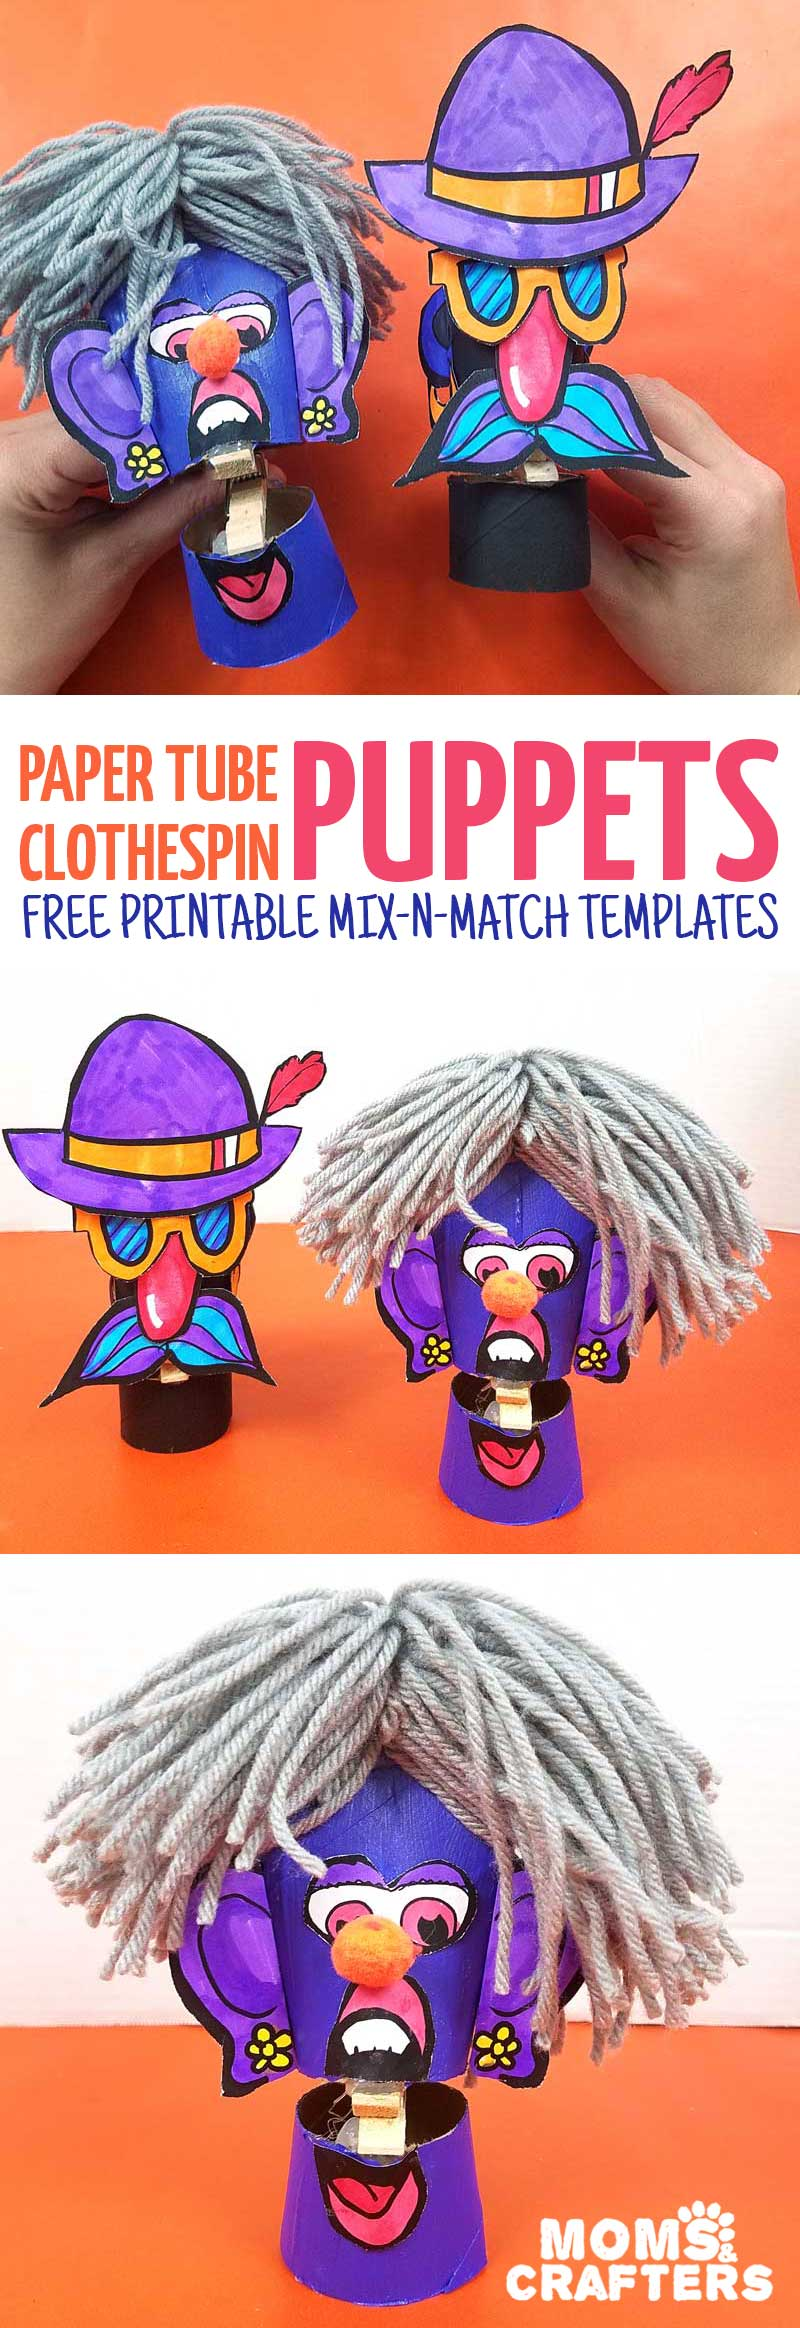 Make these adorable toilet paper roll clothespin puppets using the free paper craft template! It includes loads of mix and match facial featues and accessories and is a fun recycled paper tube arts and crafts project for kids, tweens, teens, and adults.